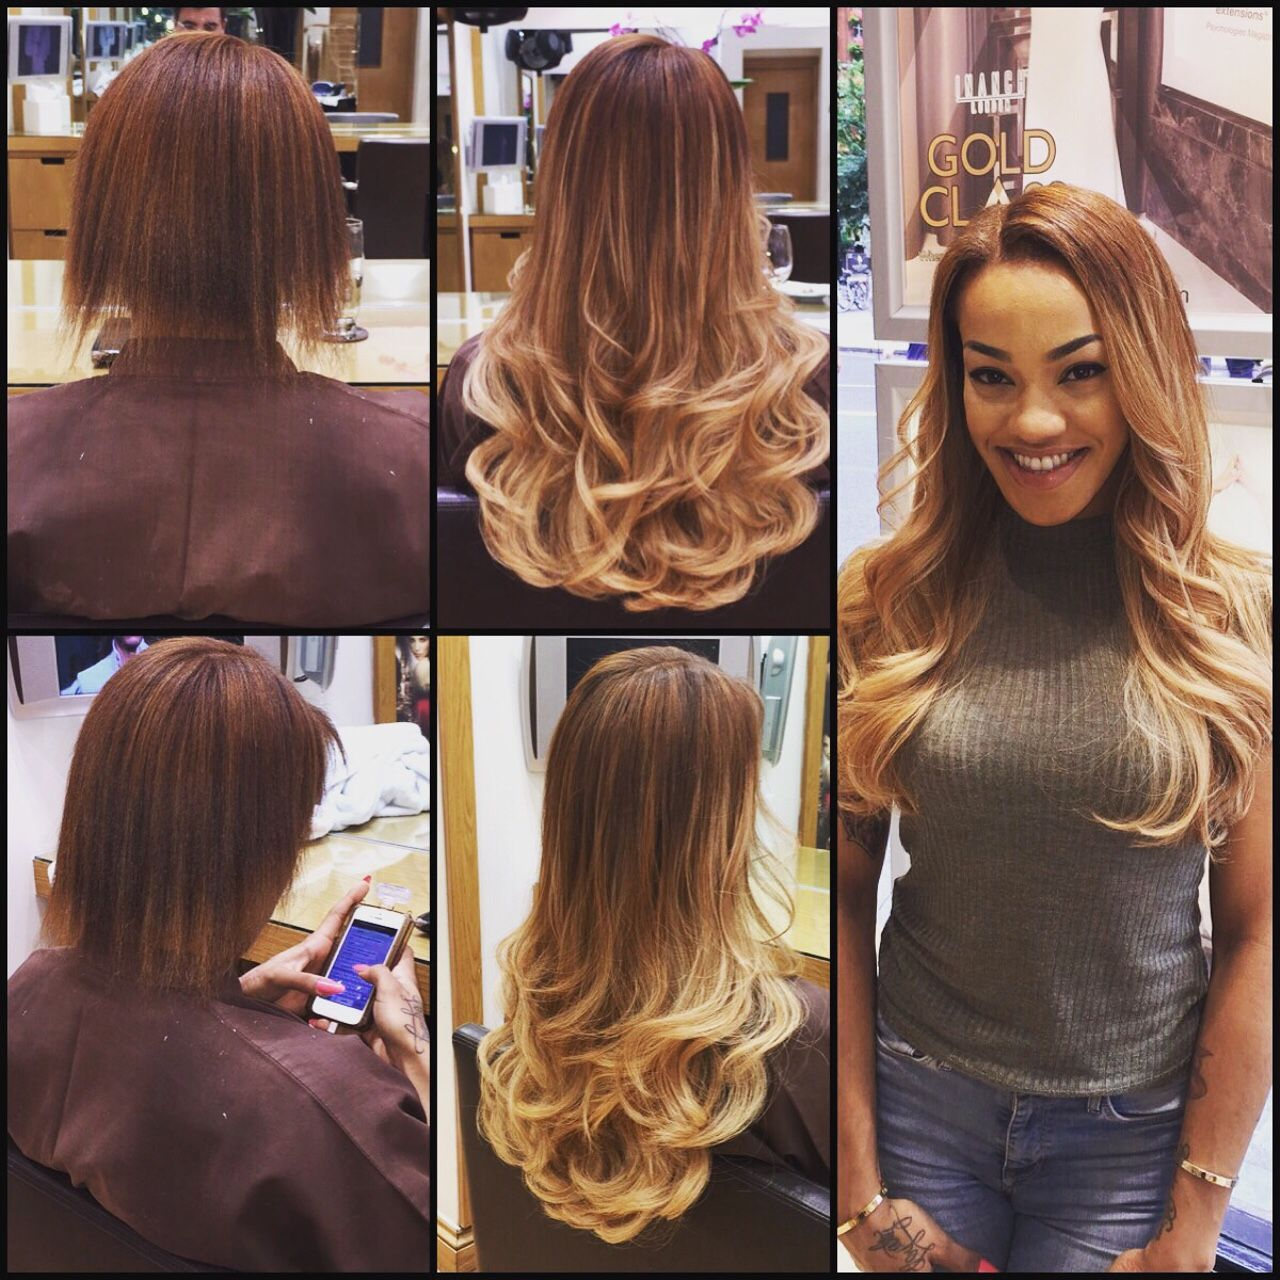 Goldclassblog Testing The Latest Miracle Hair Product Olaplex Our